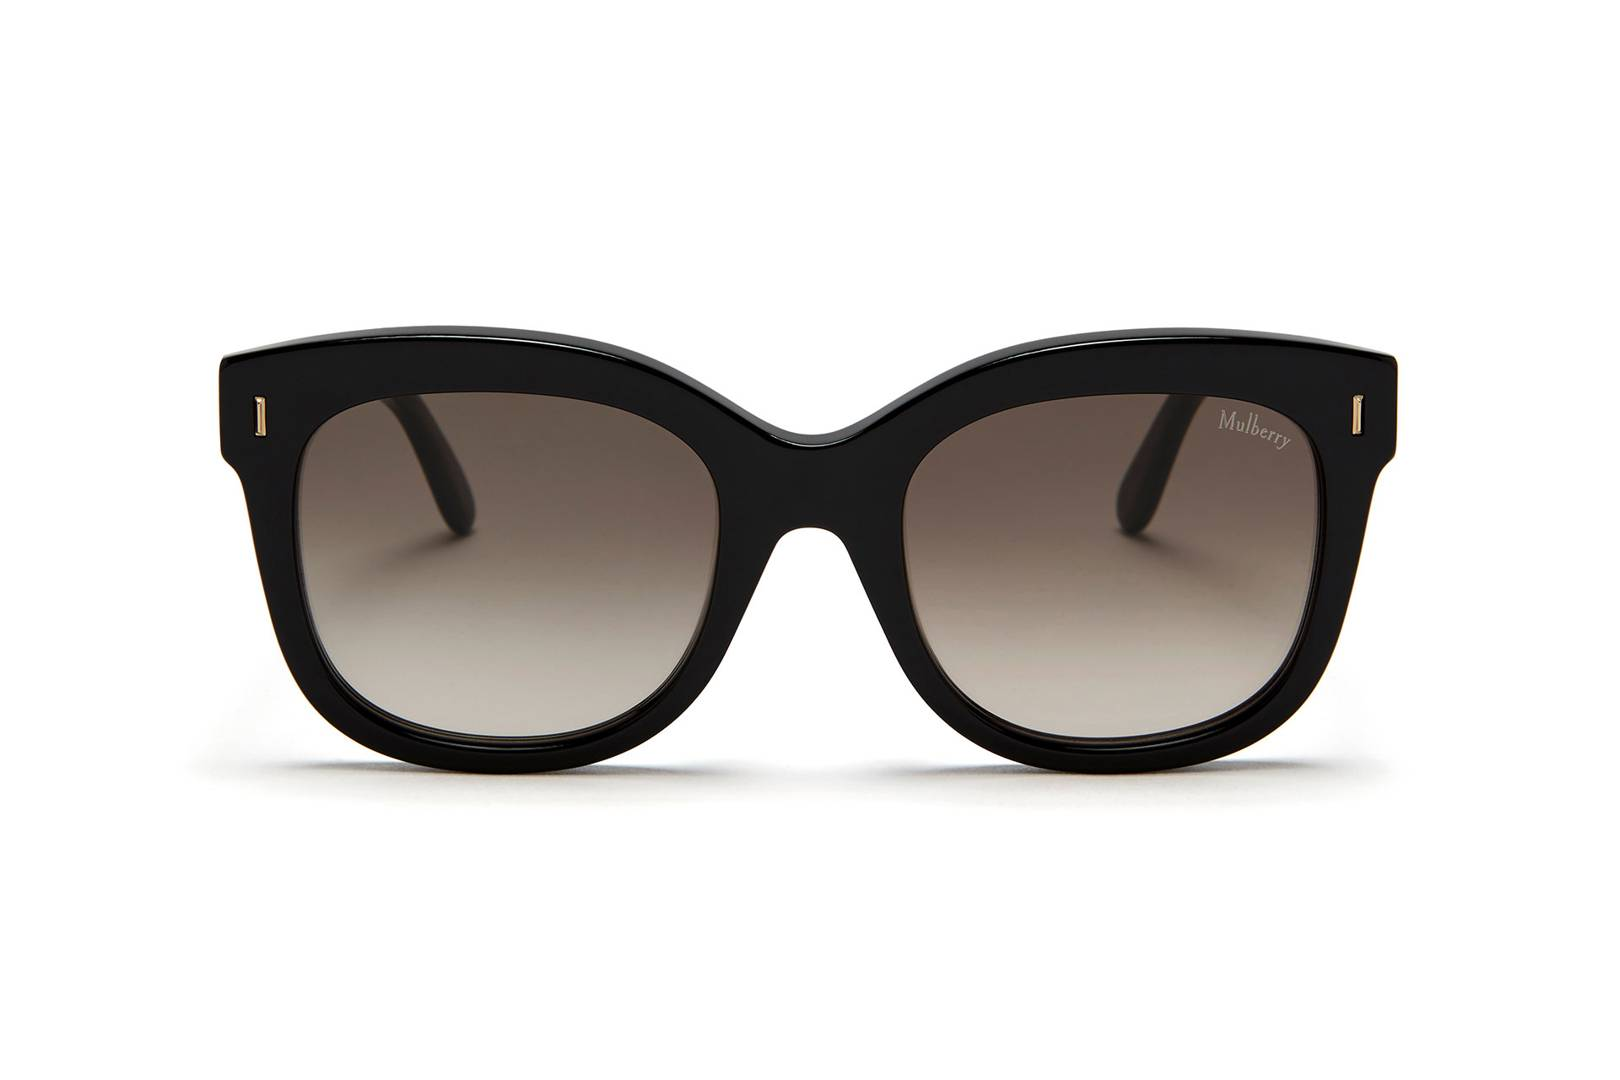 15b378c12 Mulberry Launches Sunglasses Inspired By John Lennon And Kate Moss |  British Vogue